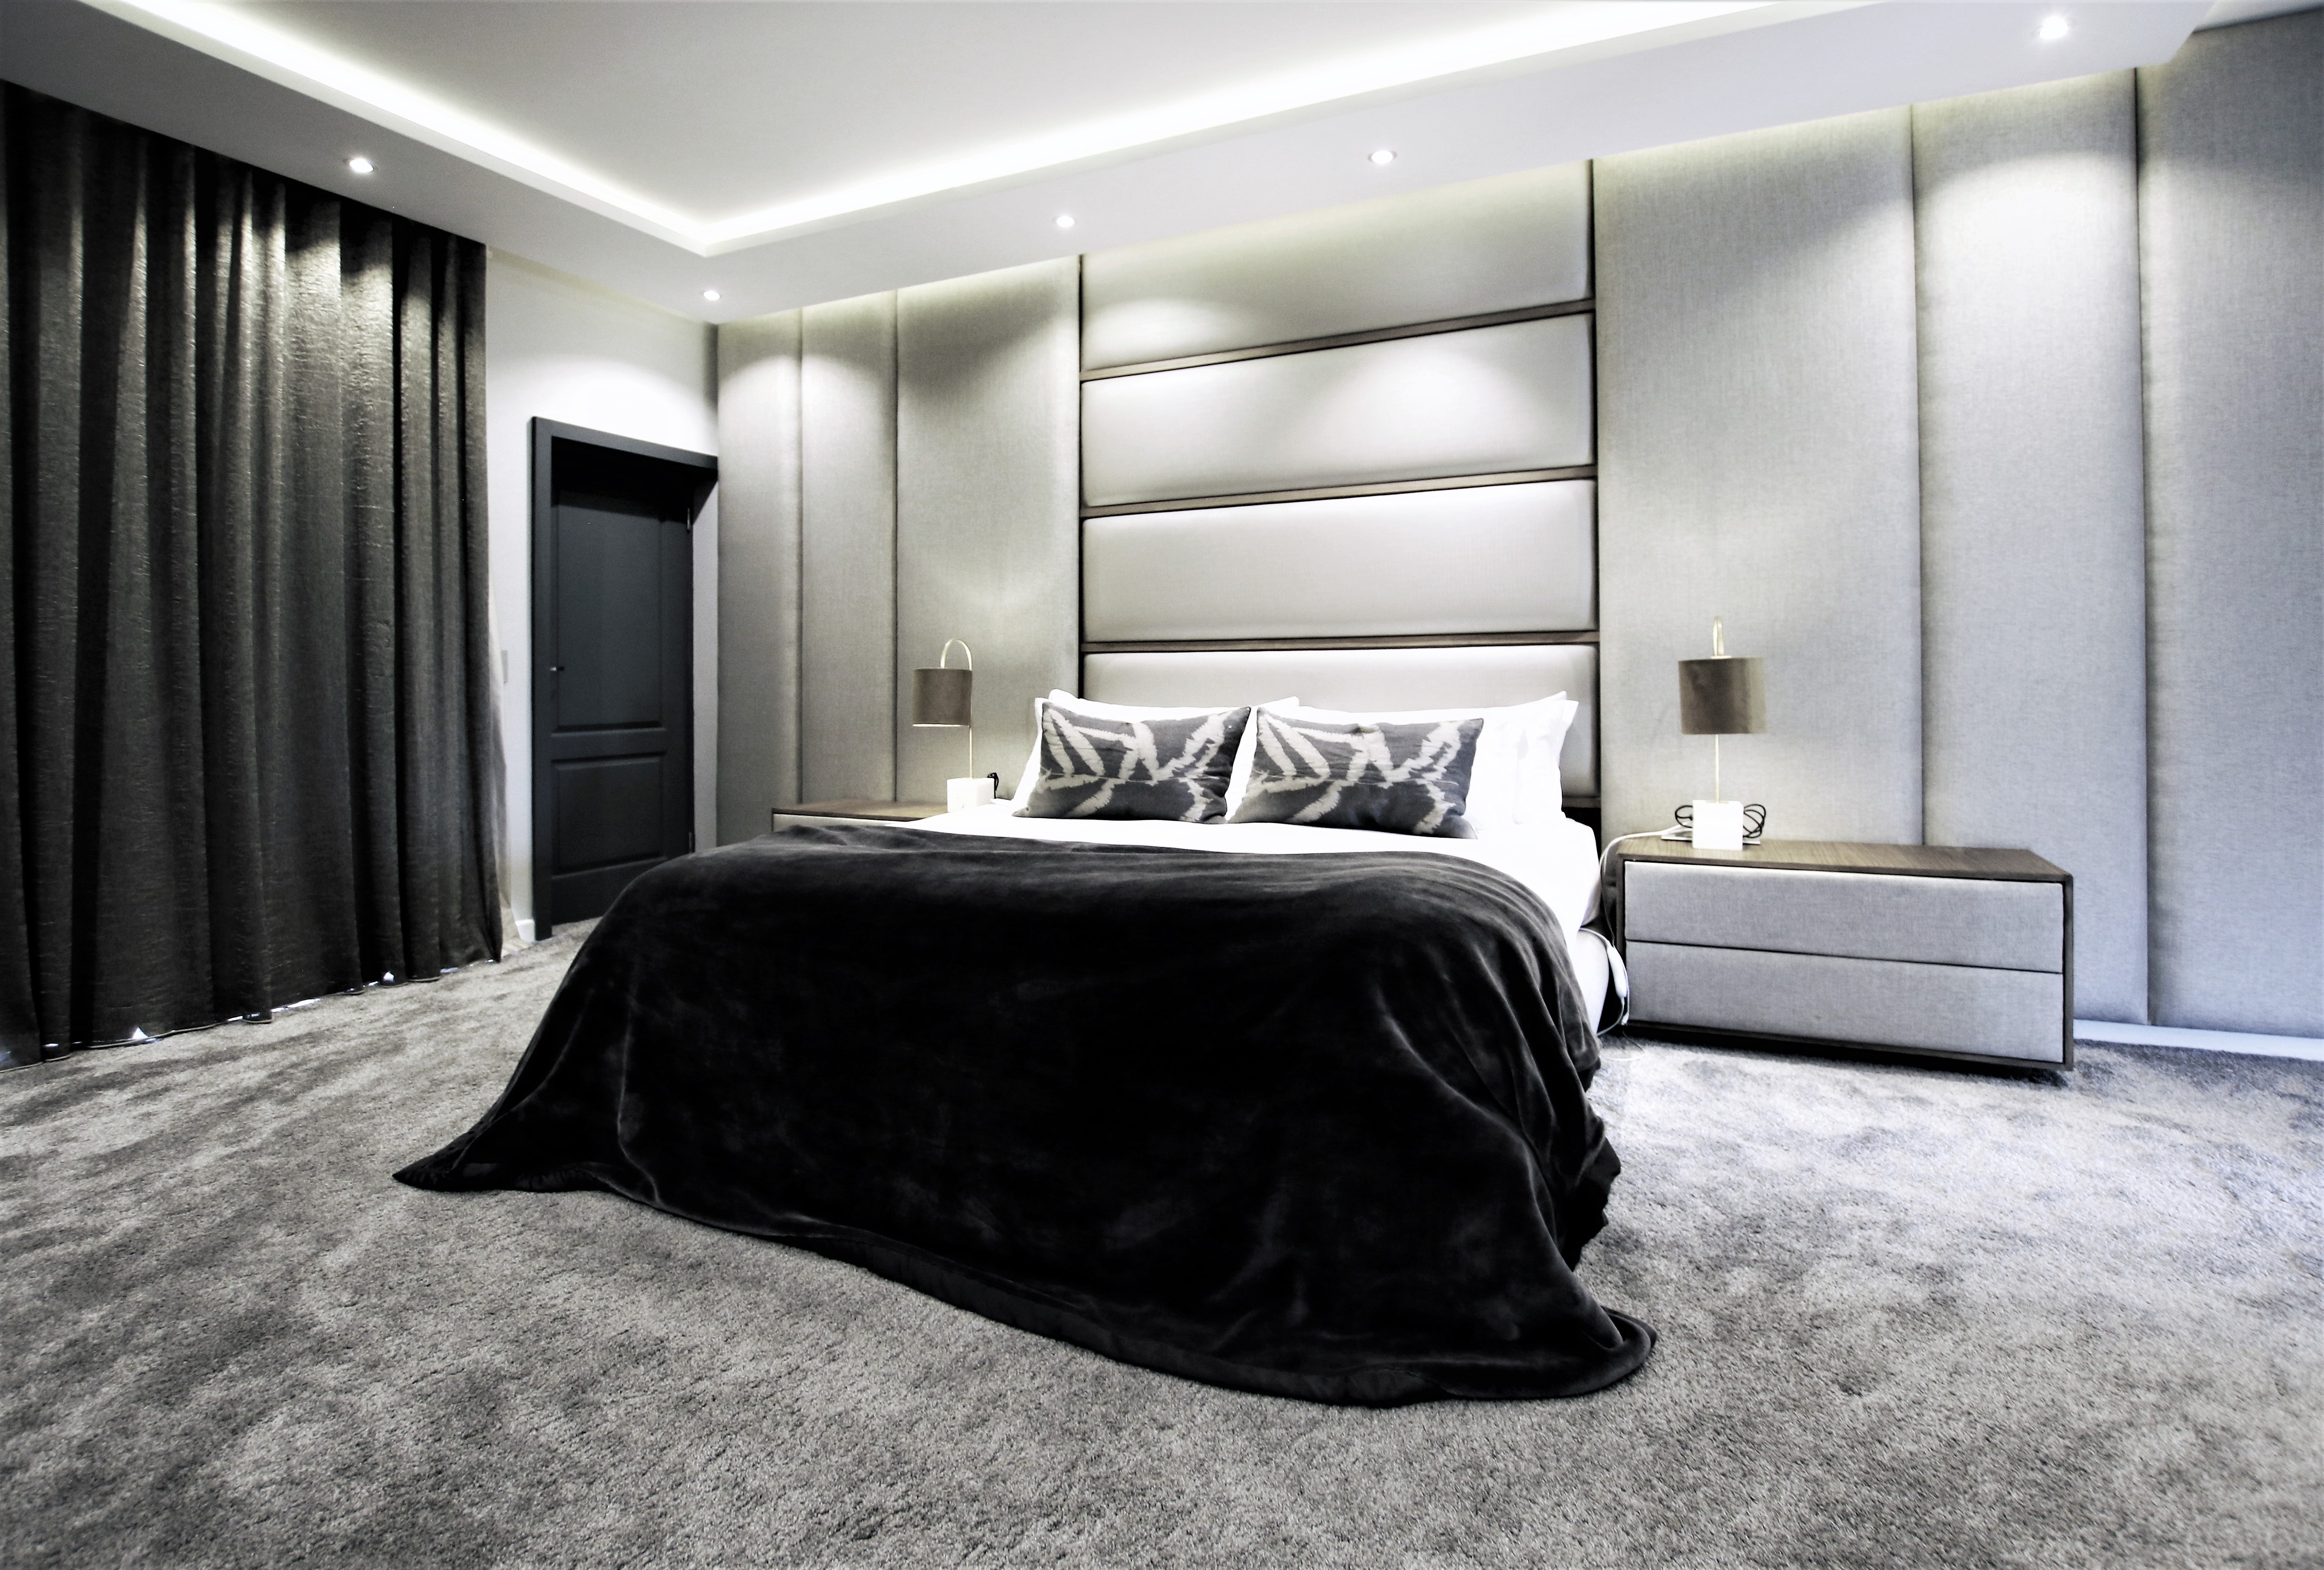 Main Bedroom Design